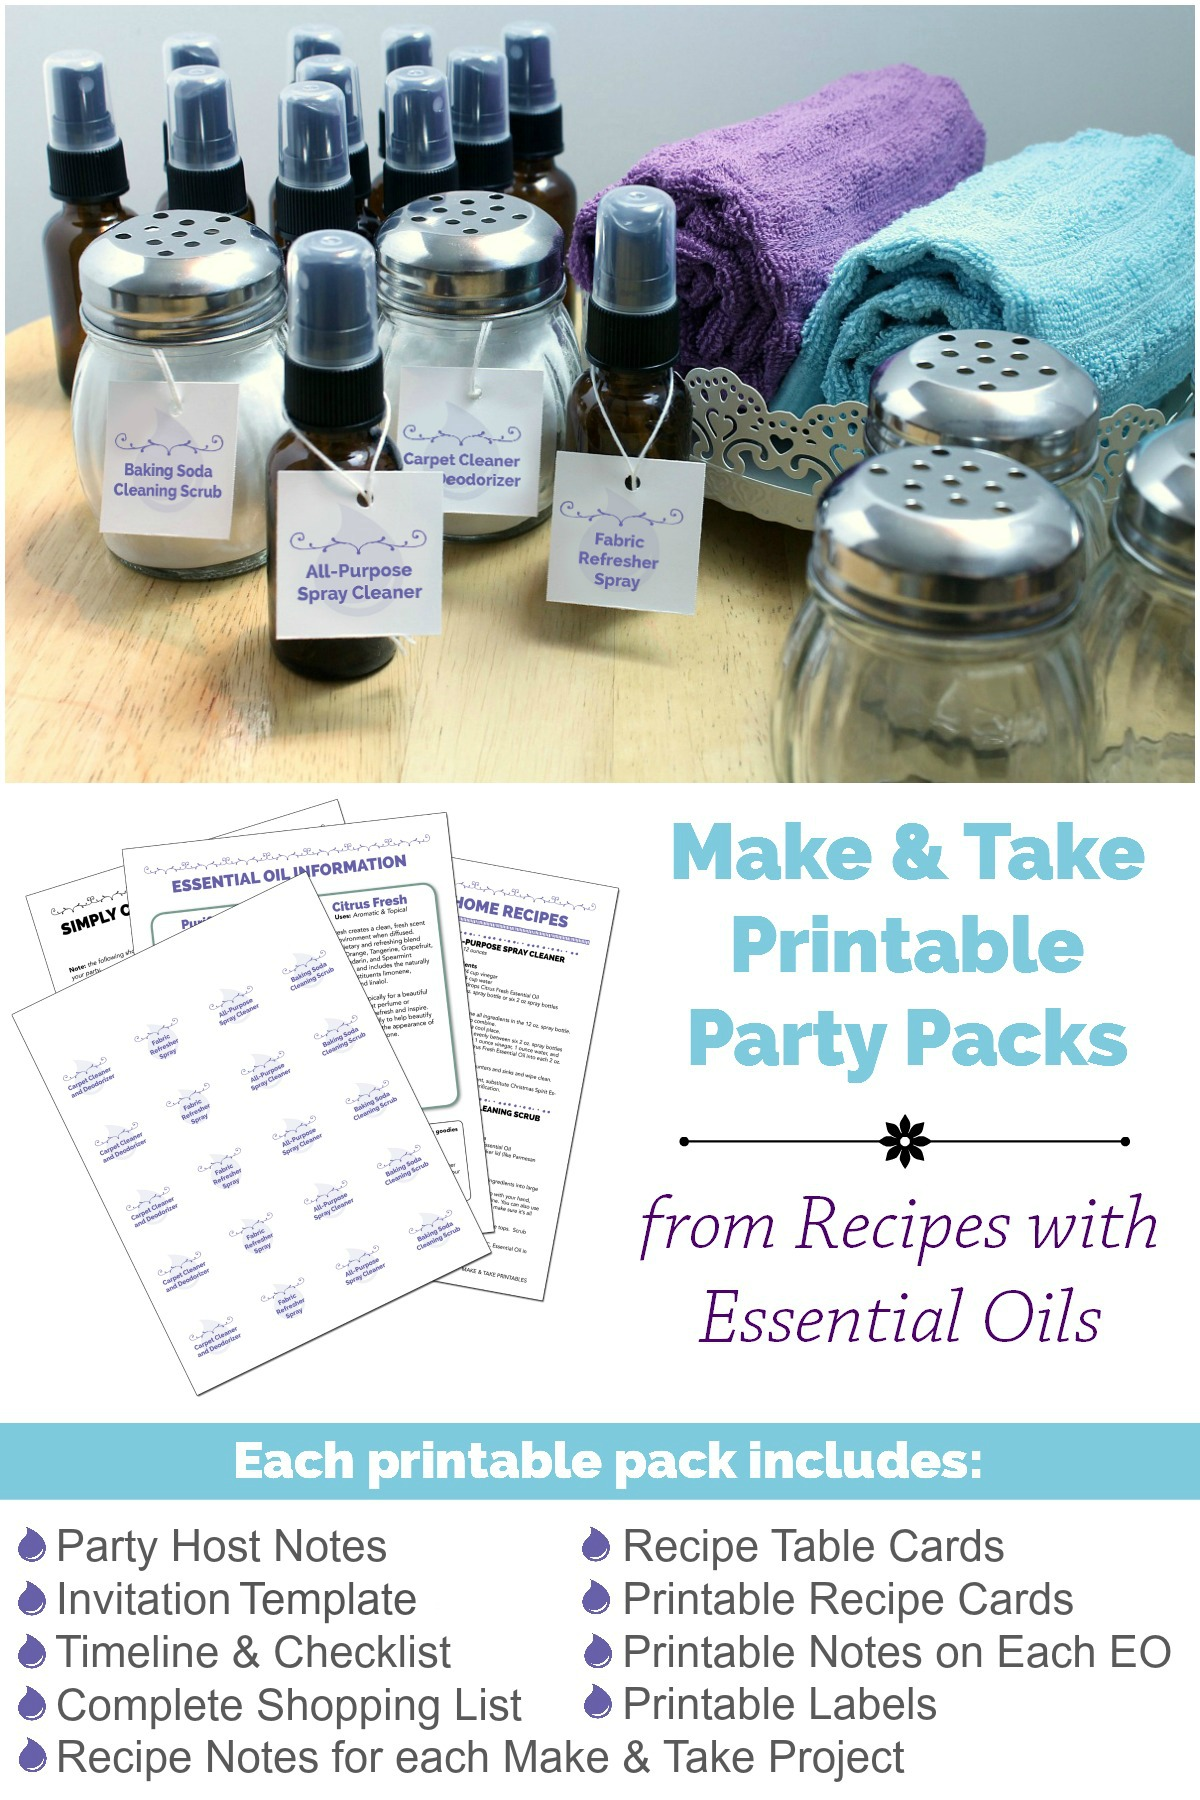 Make and Take Printable Party Packs from RecipeswithEssentialOils.com